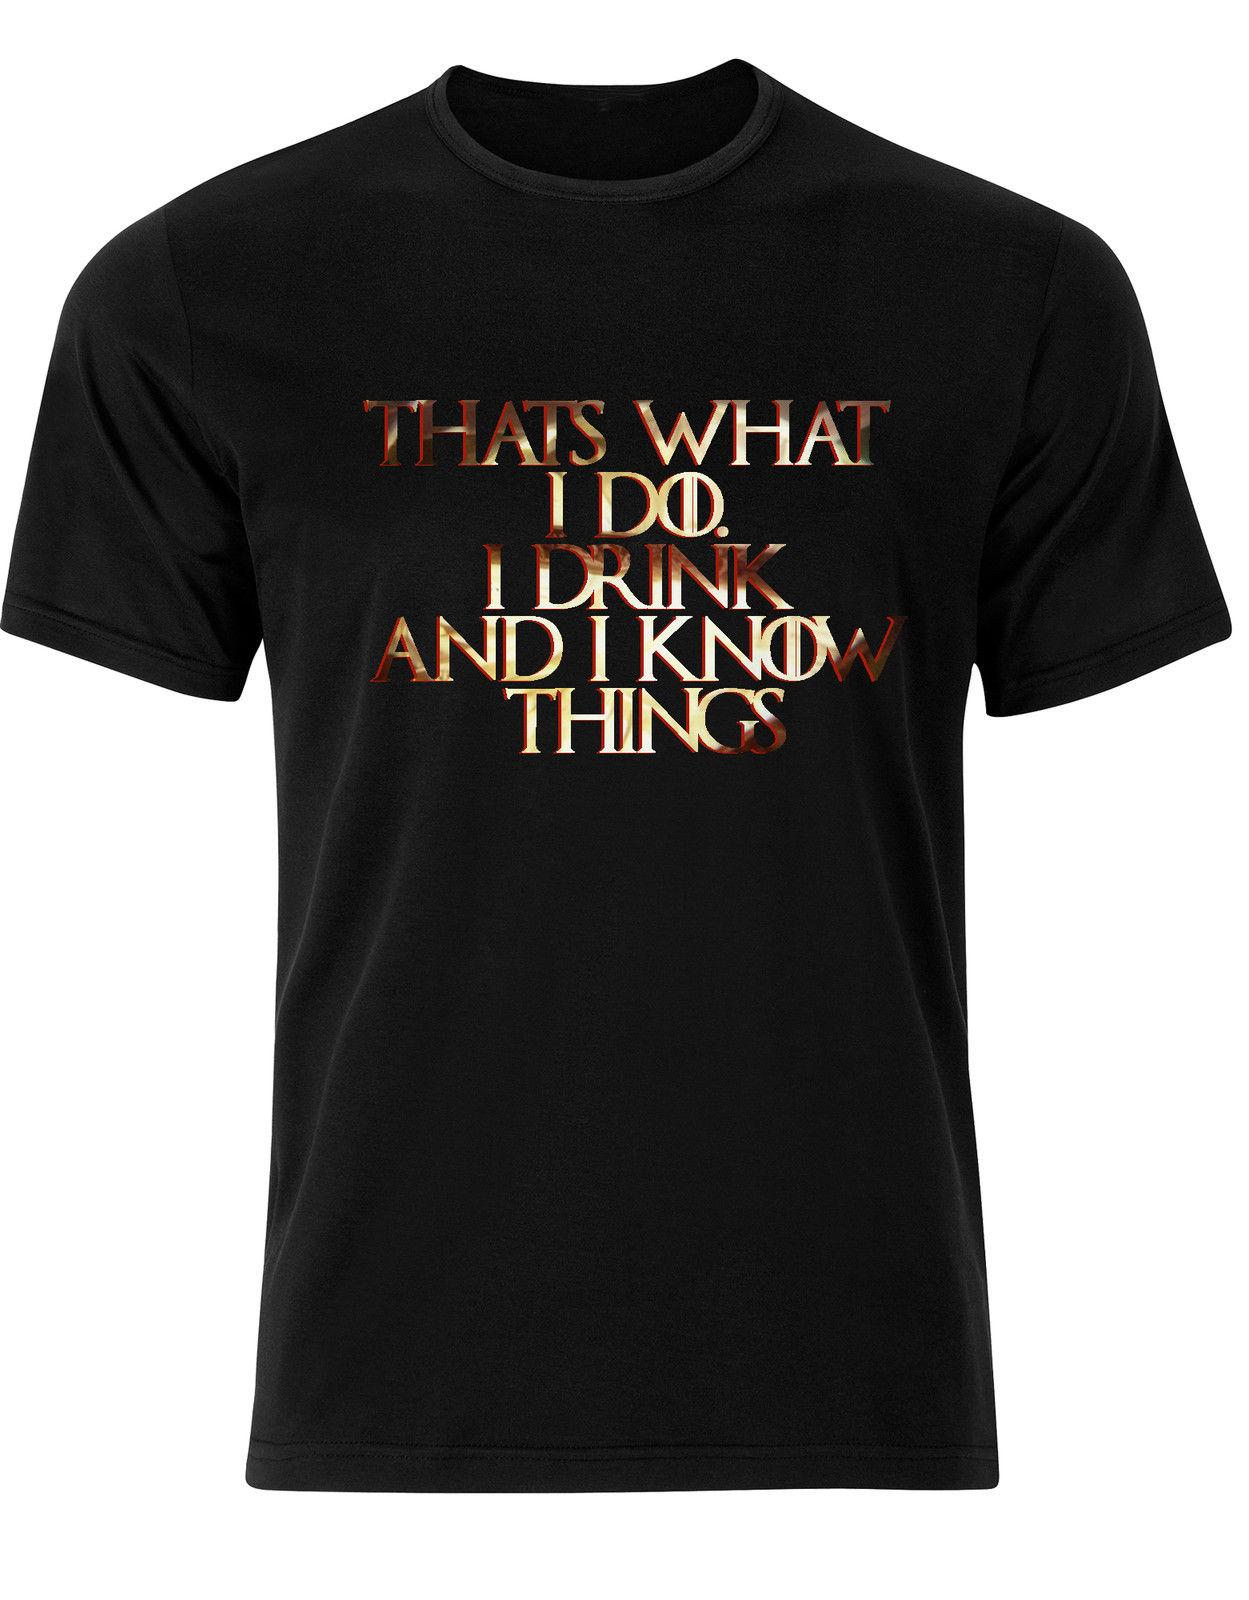 Tyrion I Drink And I Know Things Quote Quirky Mens Tshirt Ah35 Tshirt Loose Size Top Ajax 2018 Funny T Shirts 100% Cotton